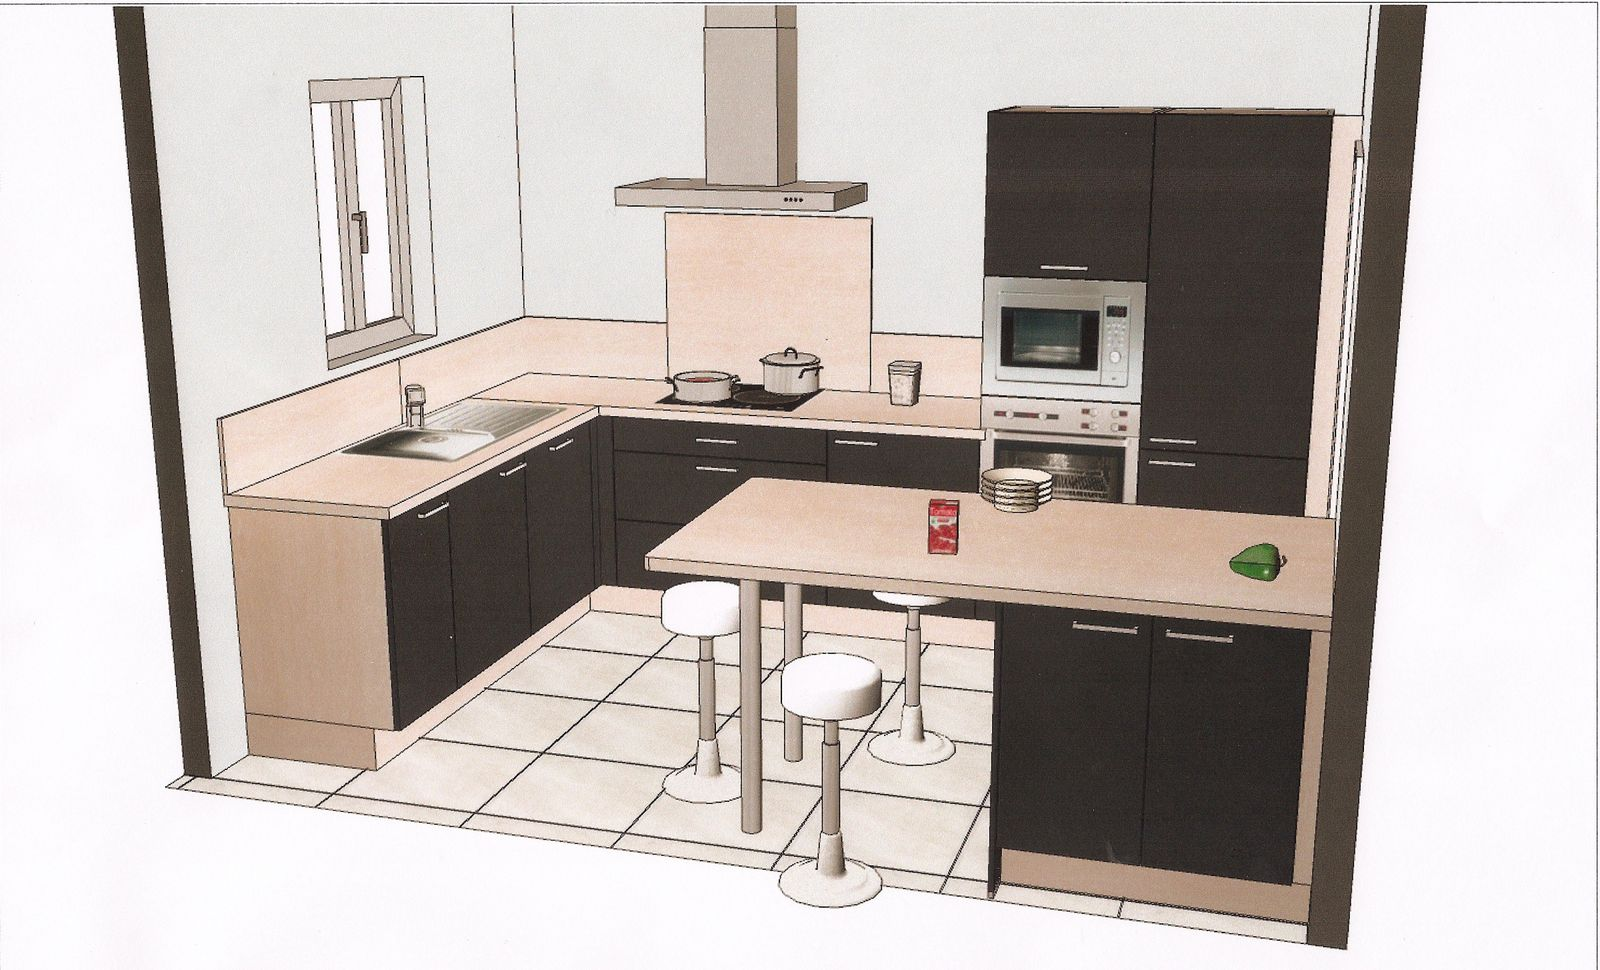 Plan petite cuisine amenagee maison design for Plan cuisine amenagee